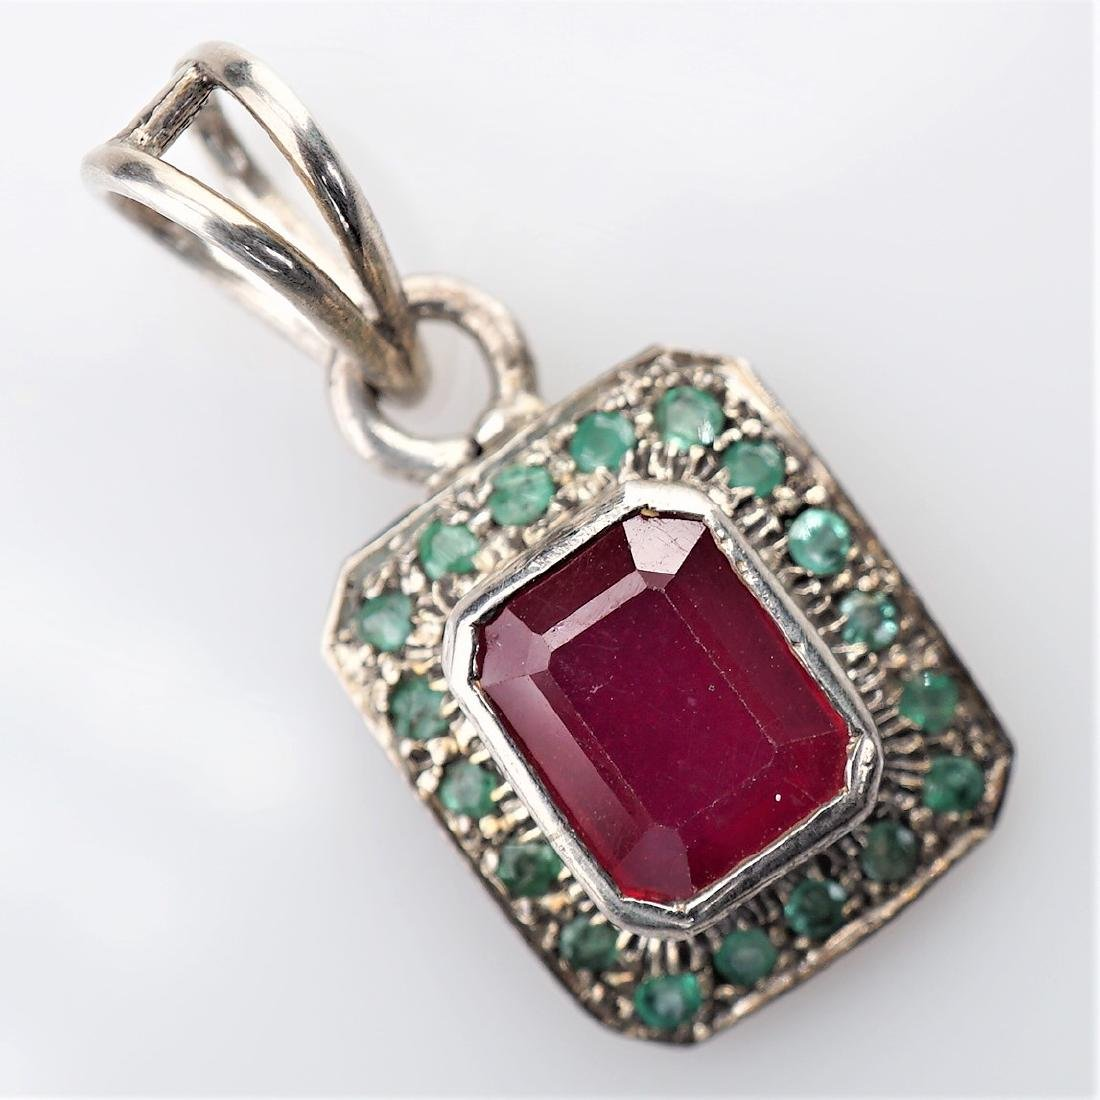 2.75 CT Ruby Pendant with Emeralds